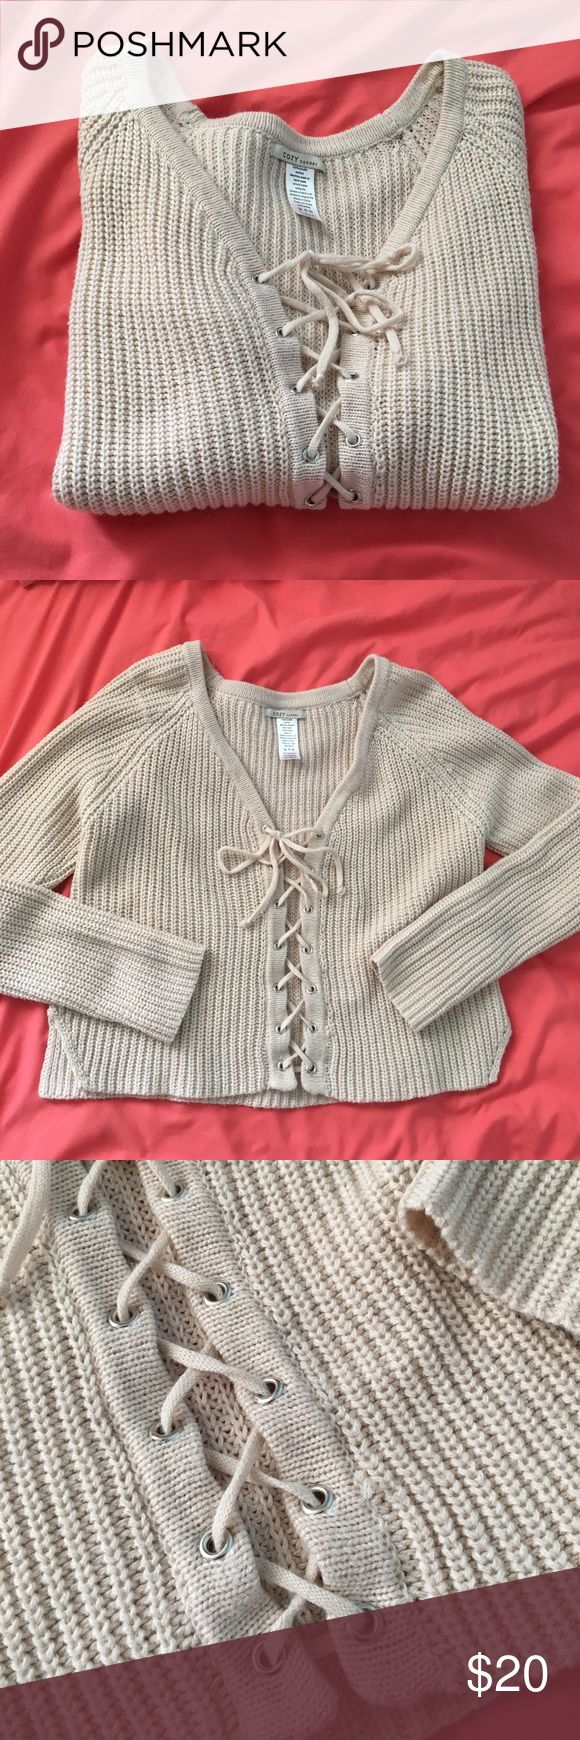 Cute Beige Lace up knot sweater Perfect for the spring! And lounging around. Has little pilling on it due to nature of fabric. Size is small/medium, can be adjusted. But over all still good condition! Didn't wear it much just didn't look as good on me as I hoped. It's a random online boutique brand. 🛑➡️ NOT Urban outfitters ! Using for exposure Urban Outfitters Tops Sweatshirts & Hoodies